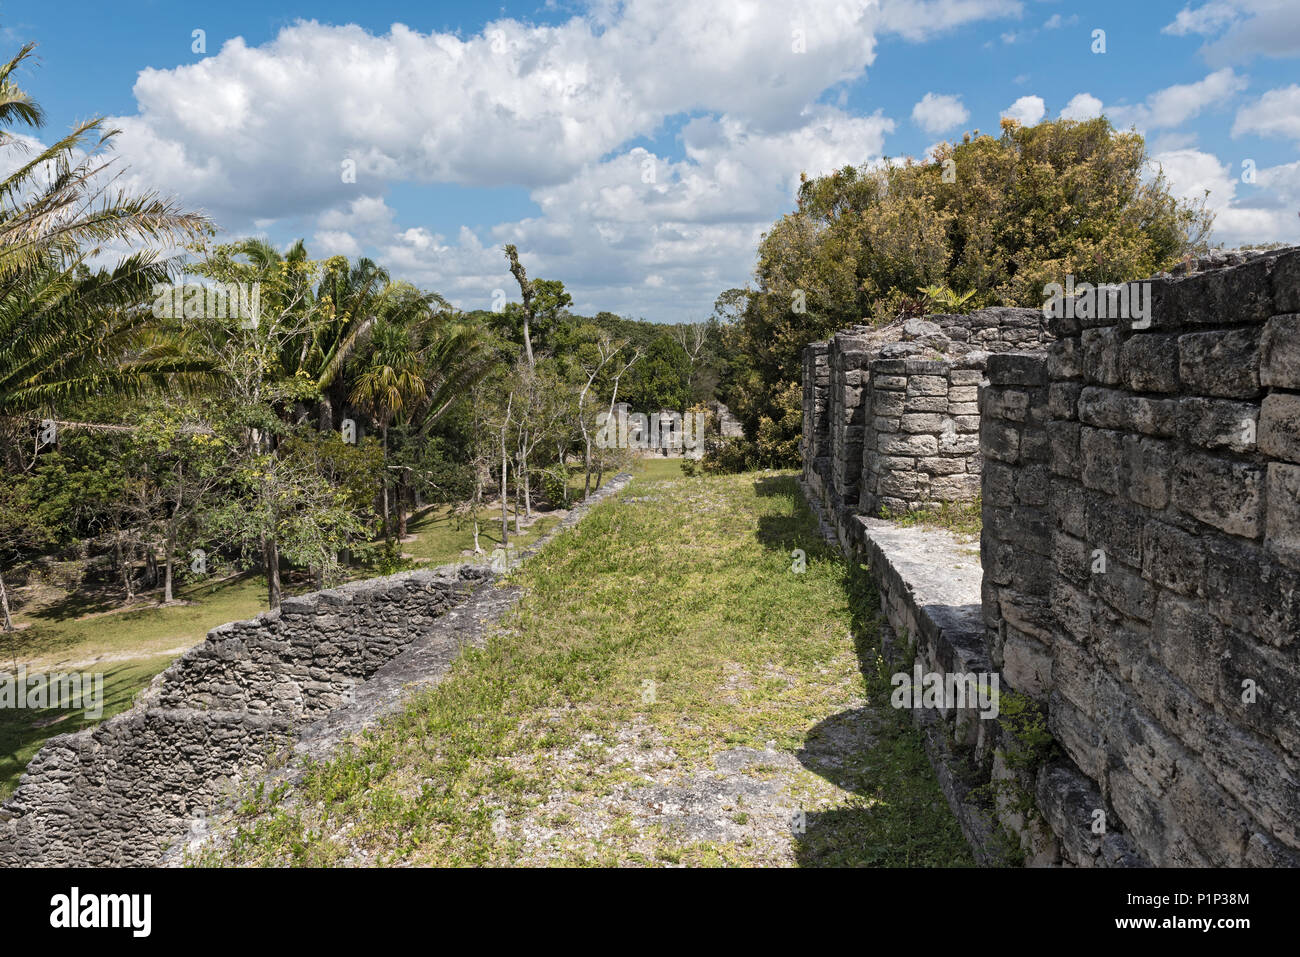 The ruins of the ancient Mayan city of Kohunlich, Quintana Roo, Mexico - Stock Image